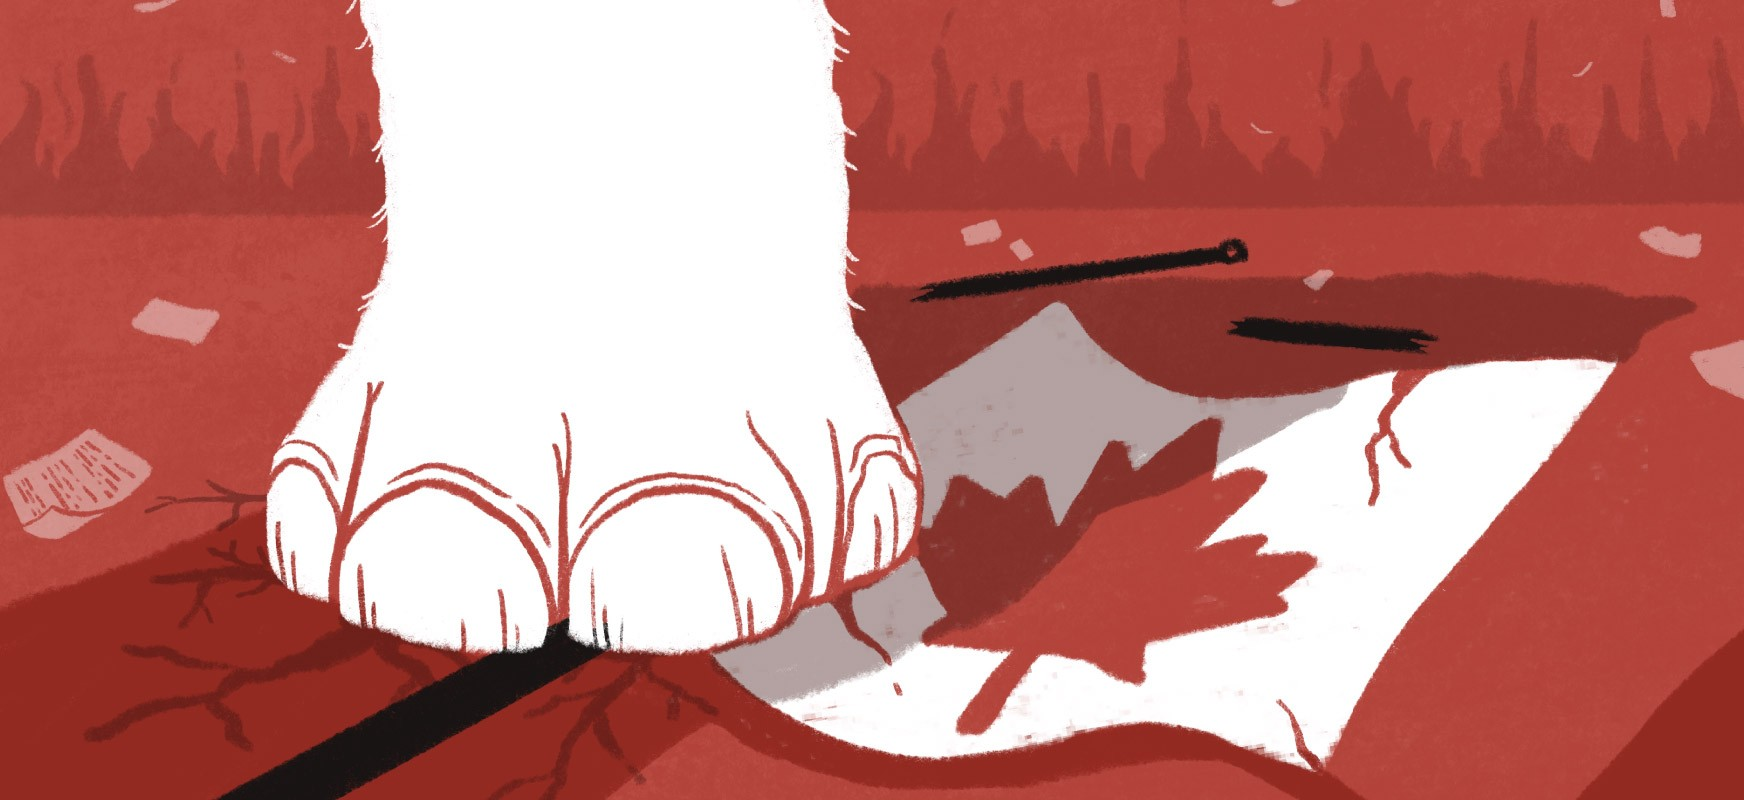 Illustration of a close up of a white elephant's foot stepping on a fallen Canadian flag to symbolize how white supremacy is dangerous to Canada.